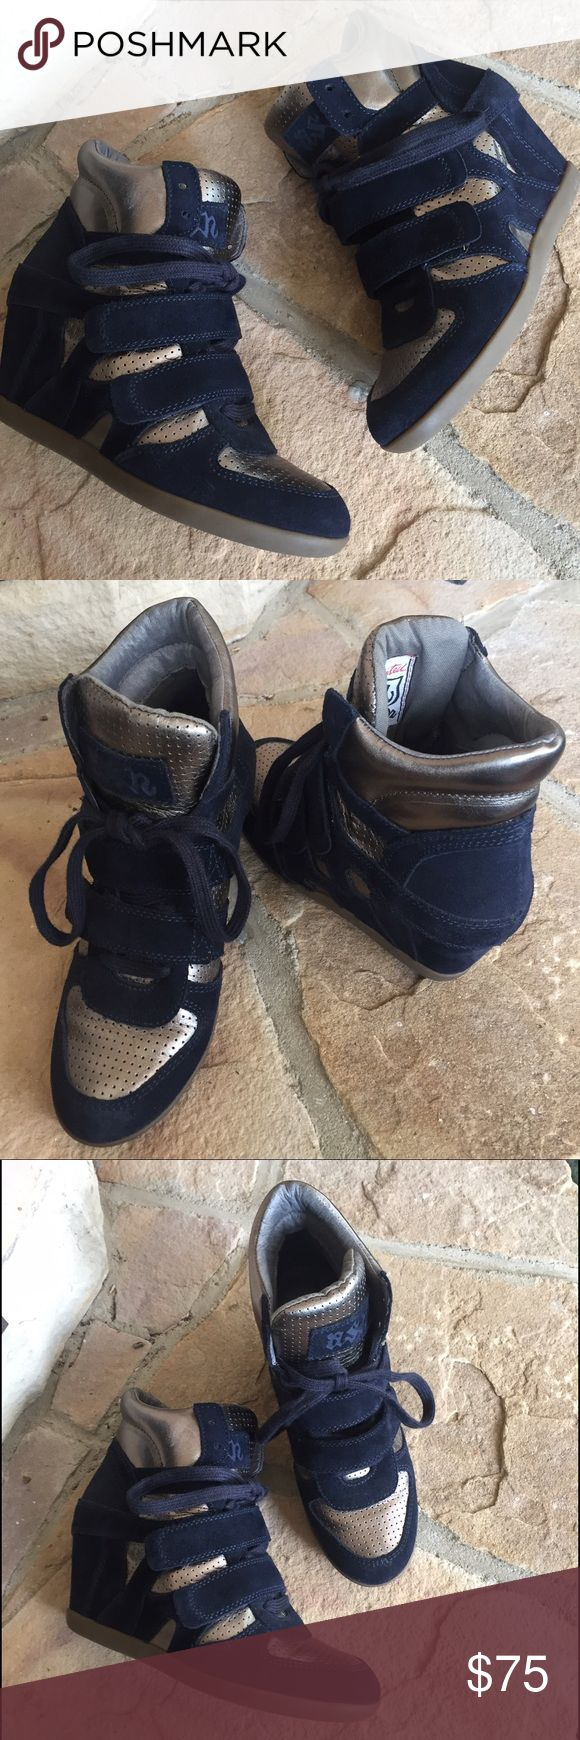 Ash 'Bowie' Wedge Sneaker Navy and Silver Preowned in great condition. Only worn a few times. Navy suede and silver. Hidden wedge heel. Made in the UK. Purchased at Nordstrom. Euro Size 37 = best fits 6.5-7 US. Retail $249.95 Ash Shoes Athletic Shoes